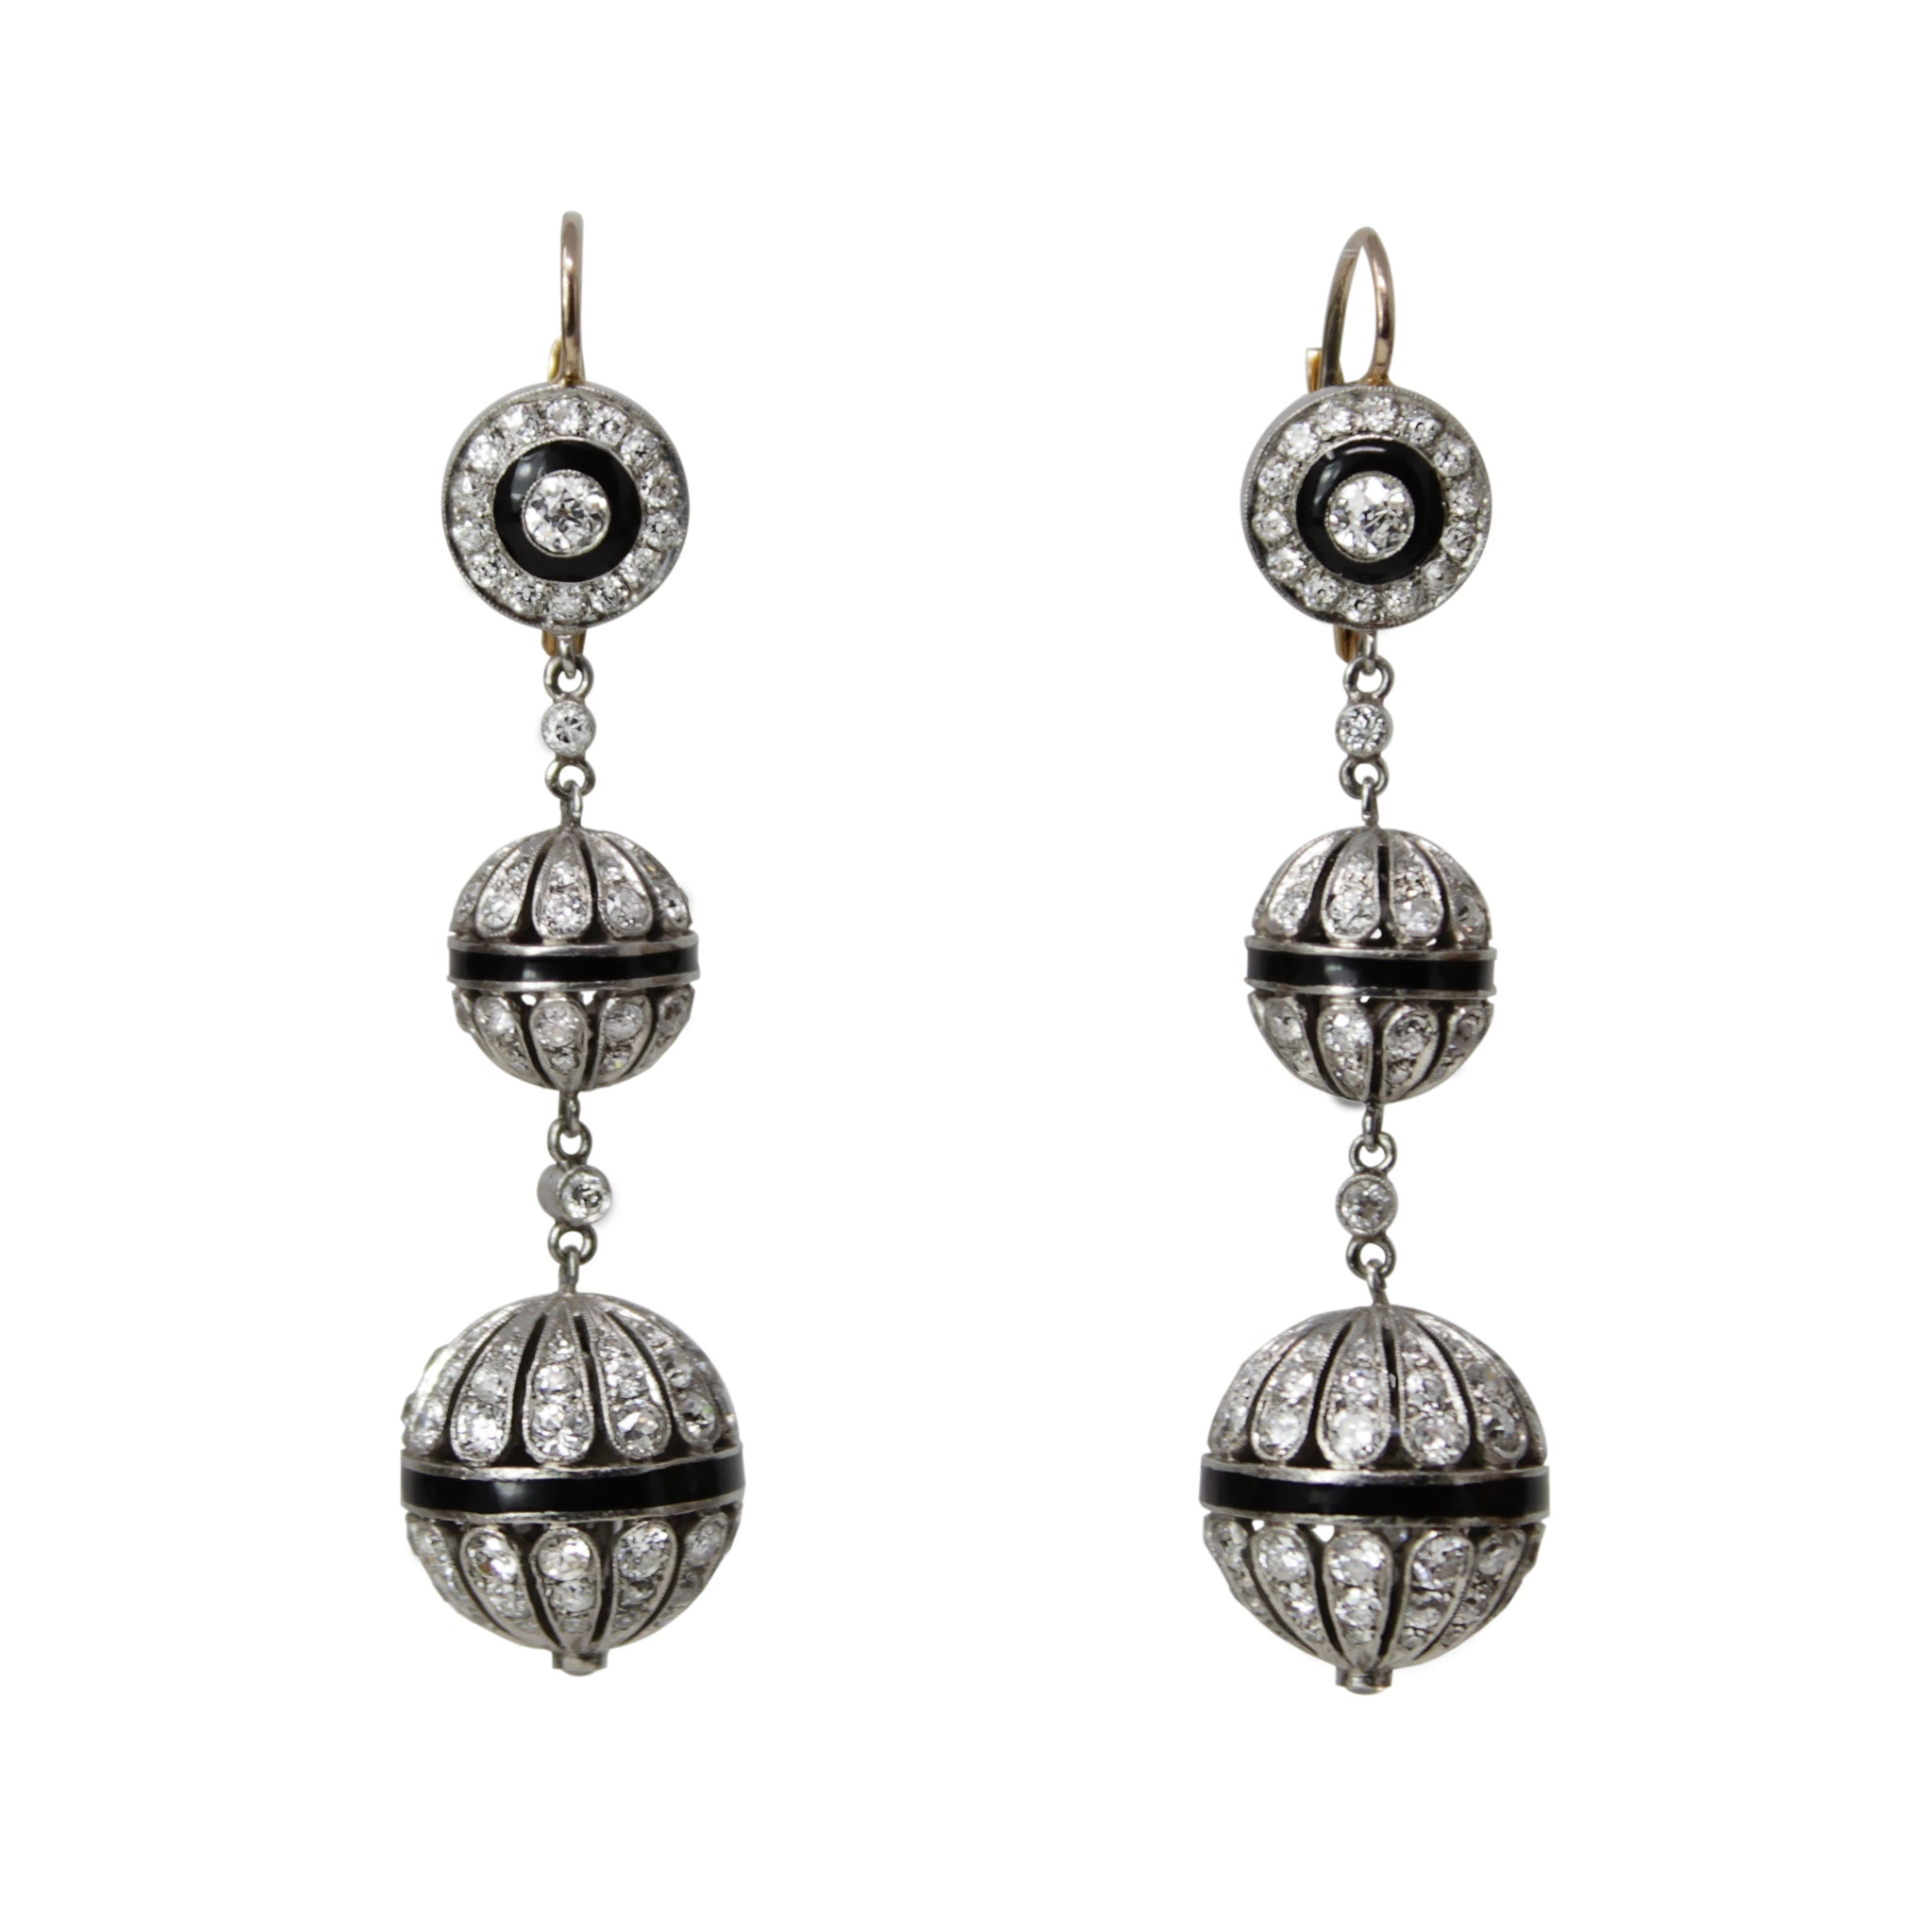 Life Of The Ball - Art Deco Antique Onyx and Diamond Swinging Long Earrings 14k White Gold